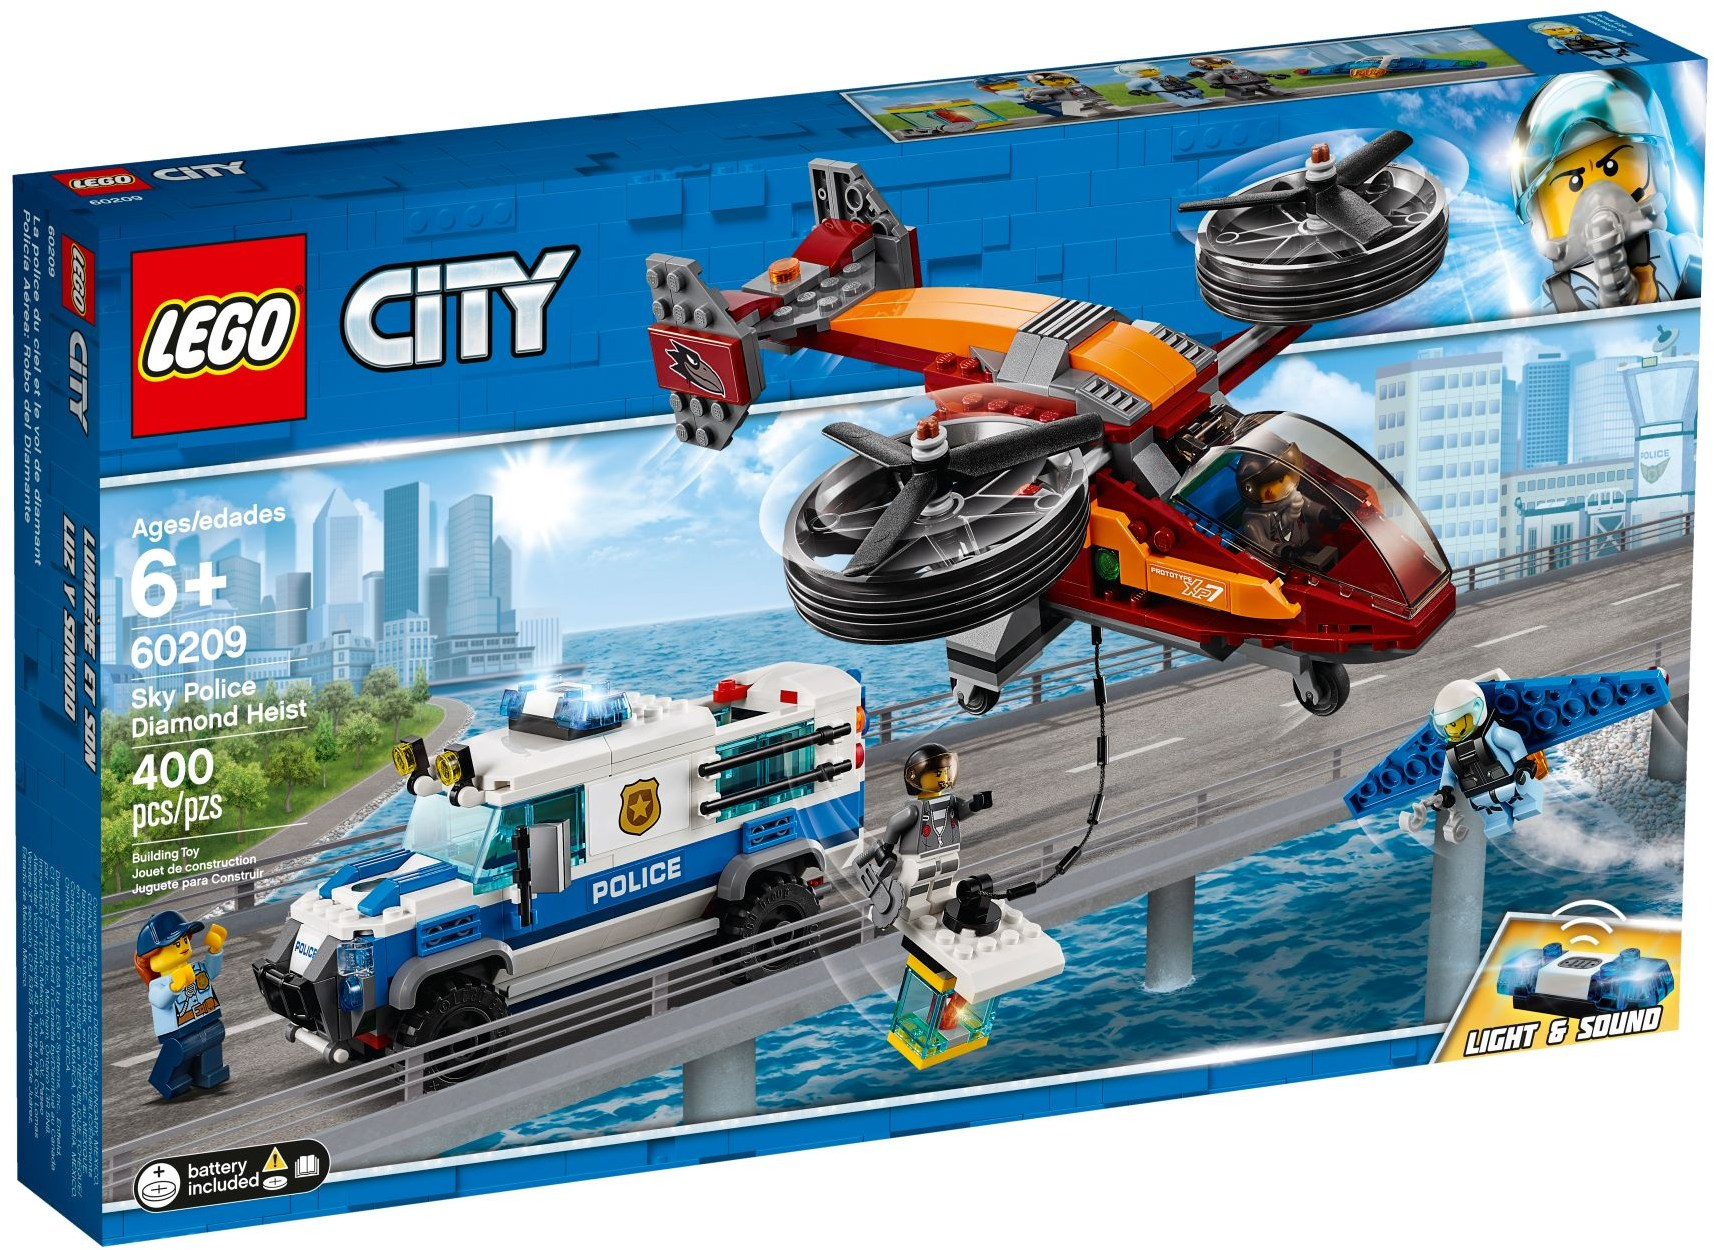 LEGO Town Sets: 60209 City Diamond Heist NEW